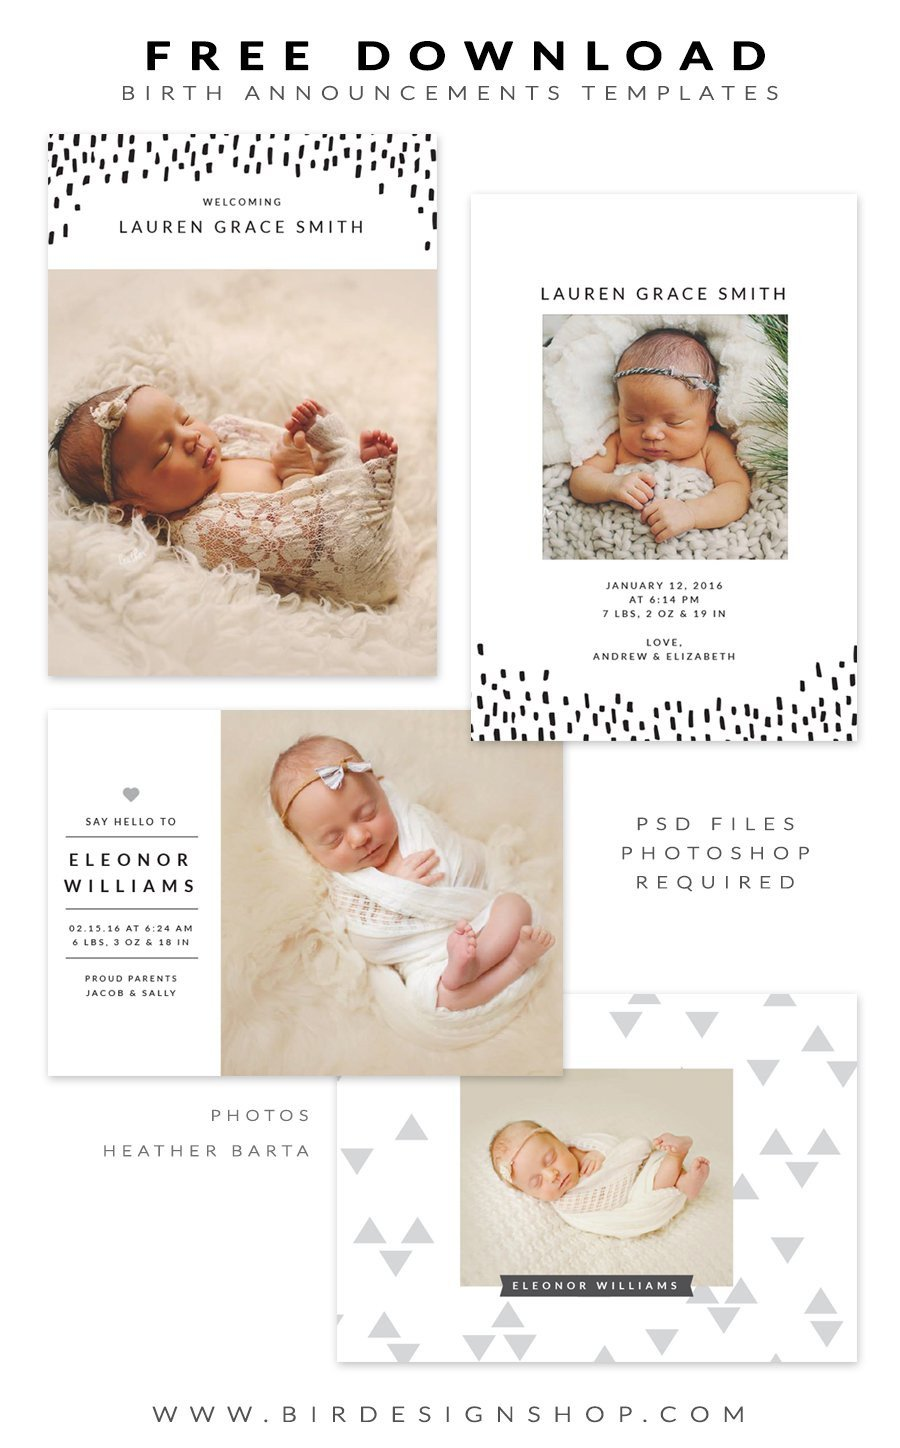 Free Pregnancy Announcement Templates Free Birth Announcements Templates January Freebie